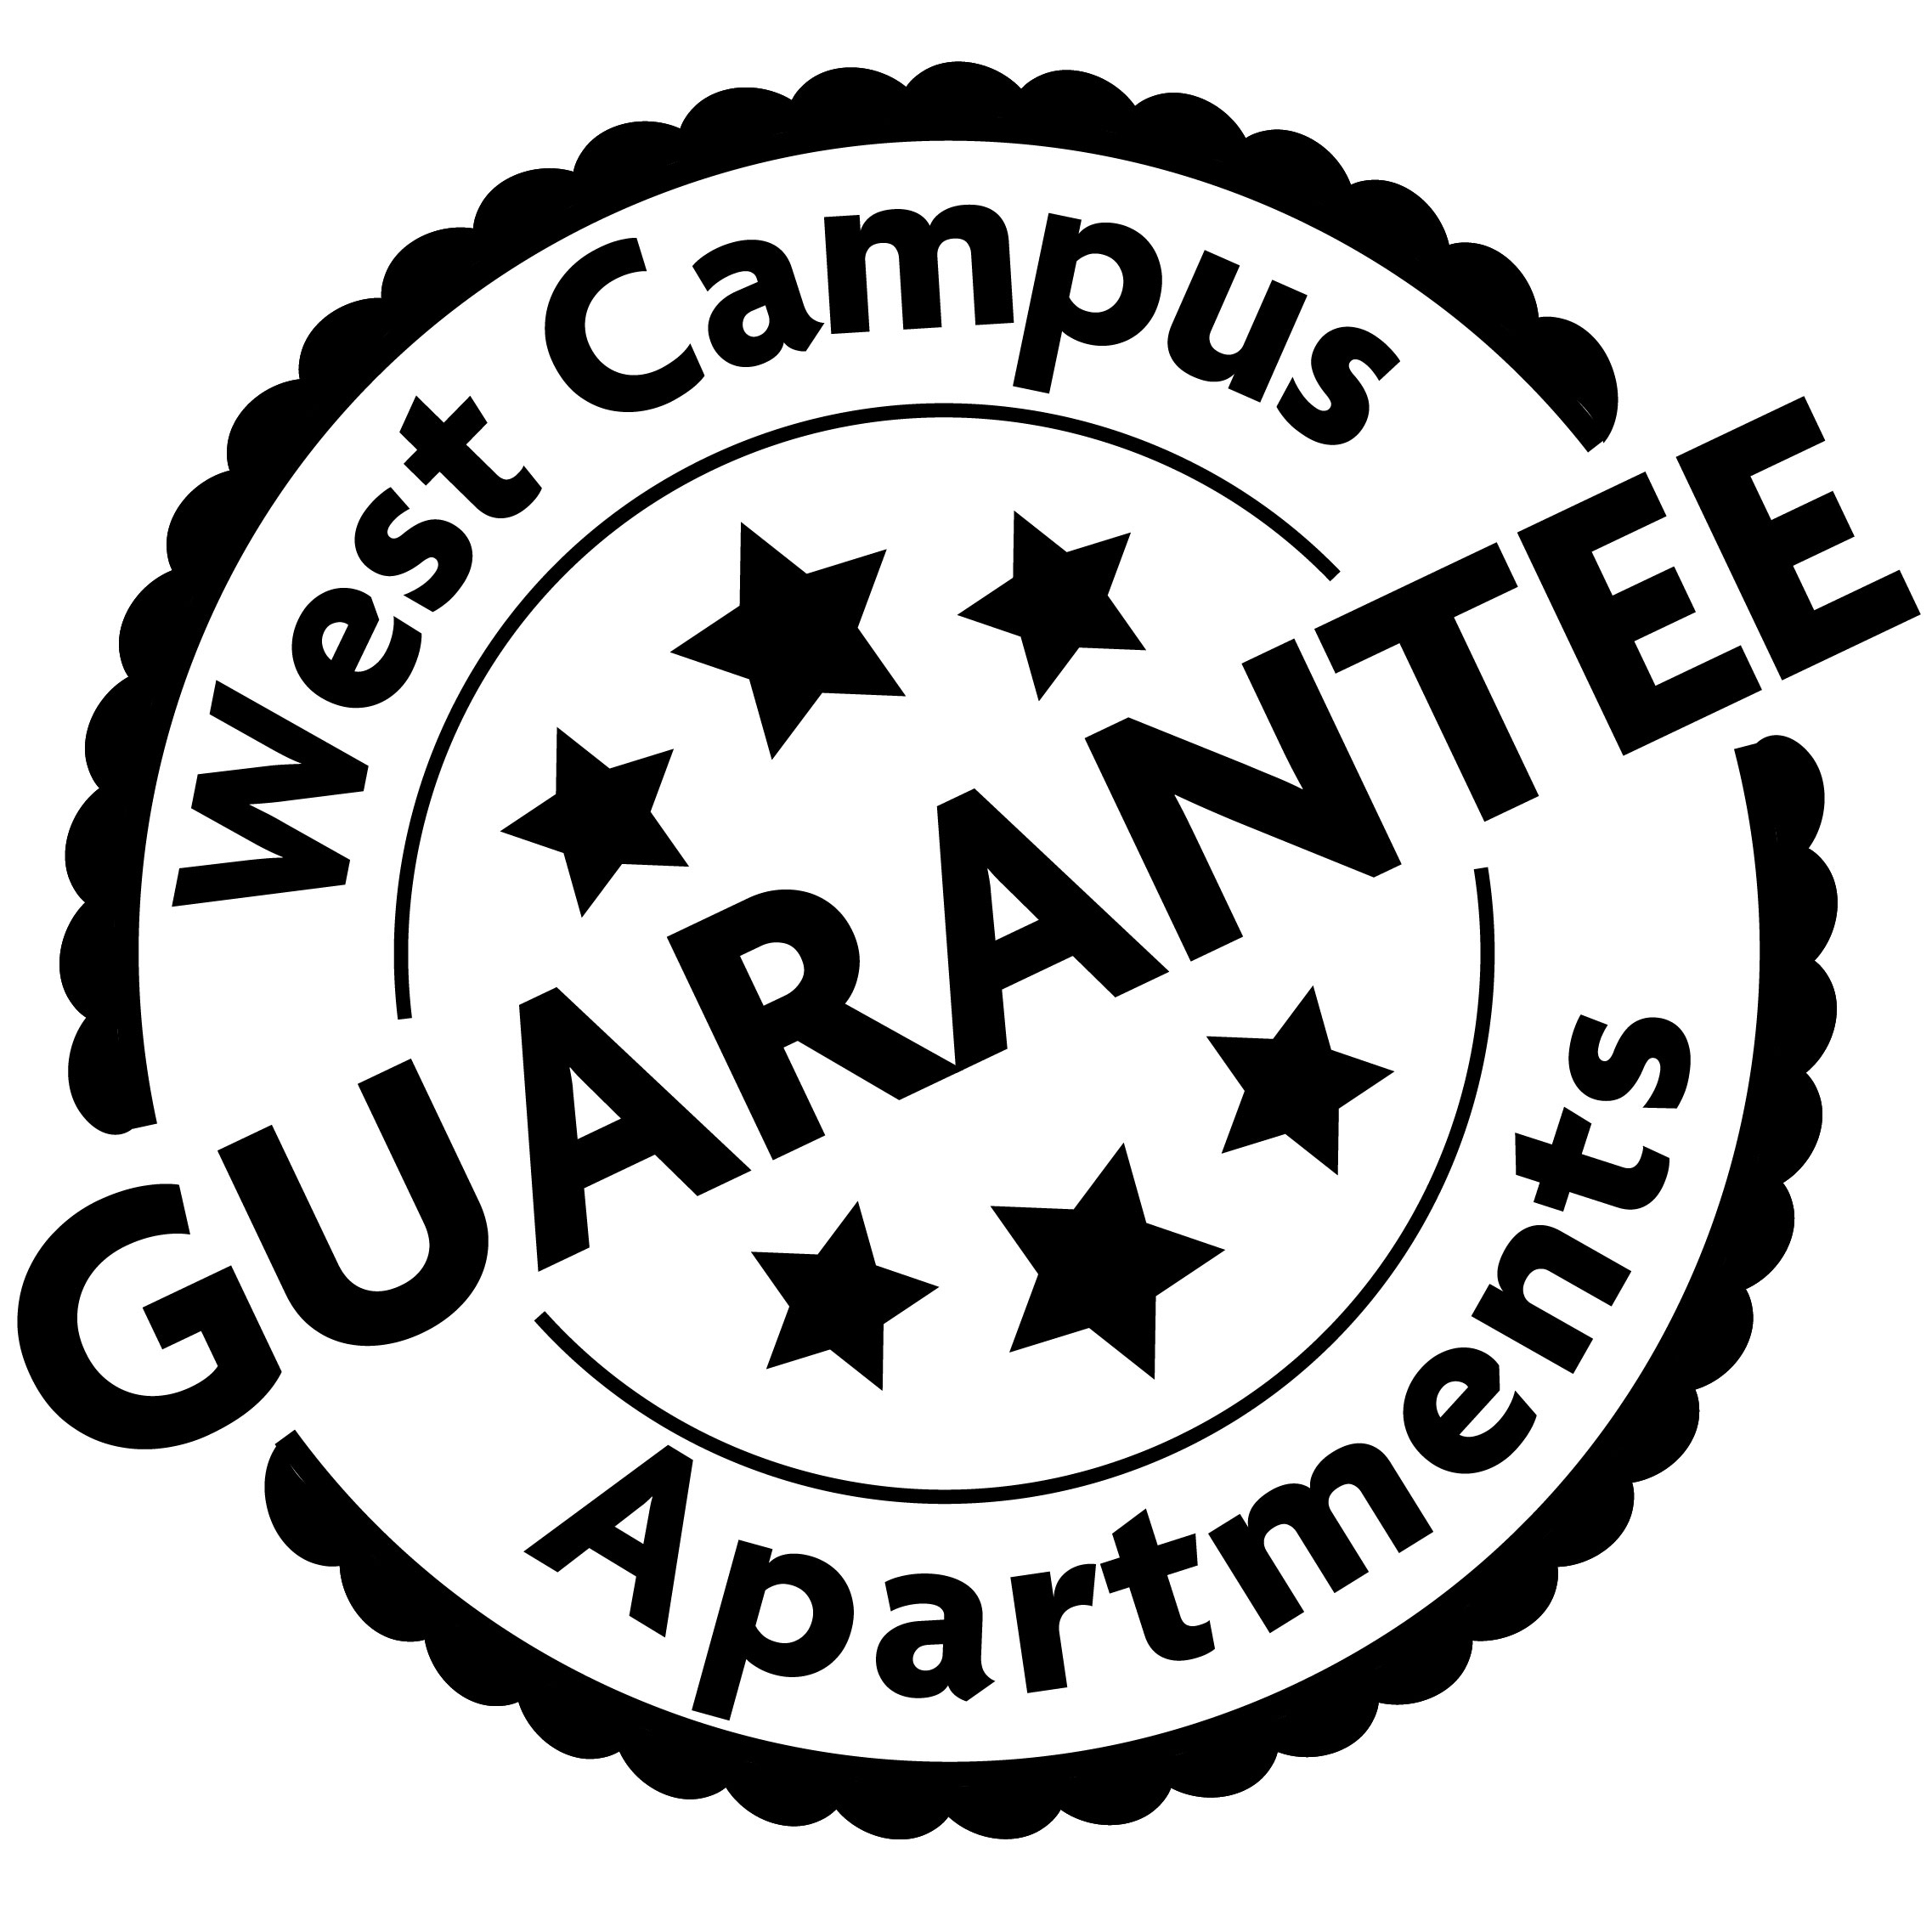 Cortland Residence: West Campus Apartments